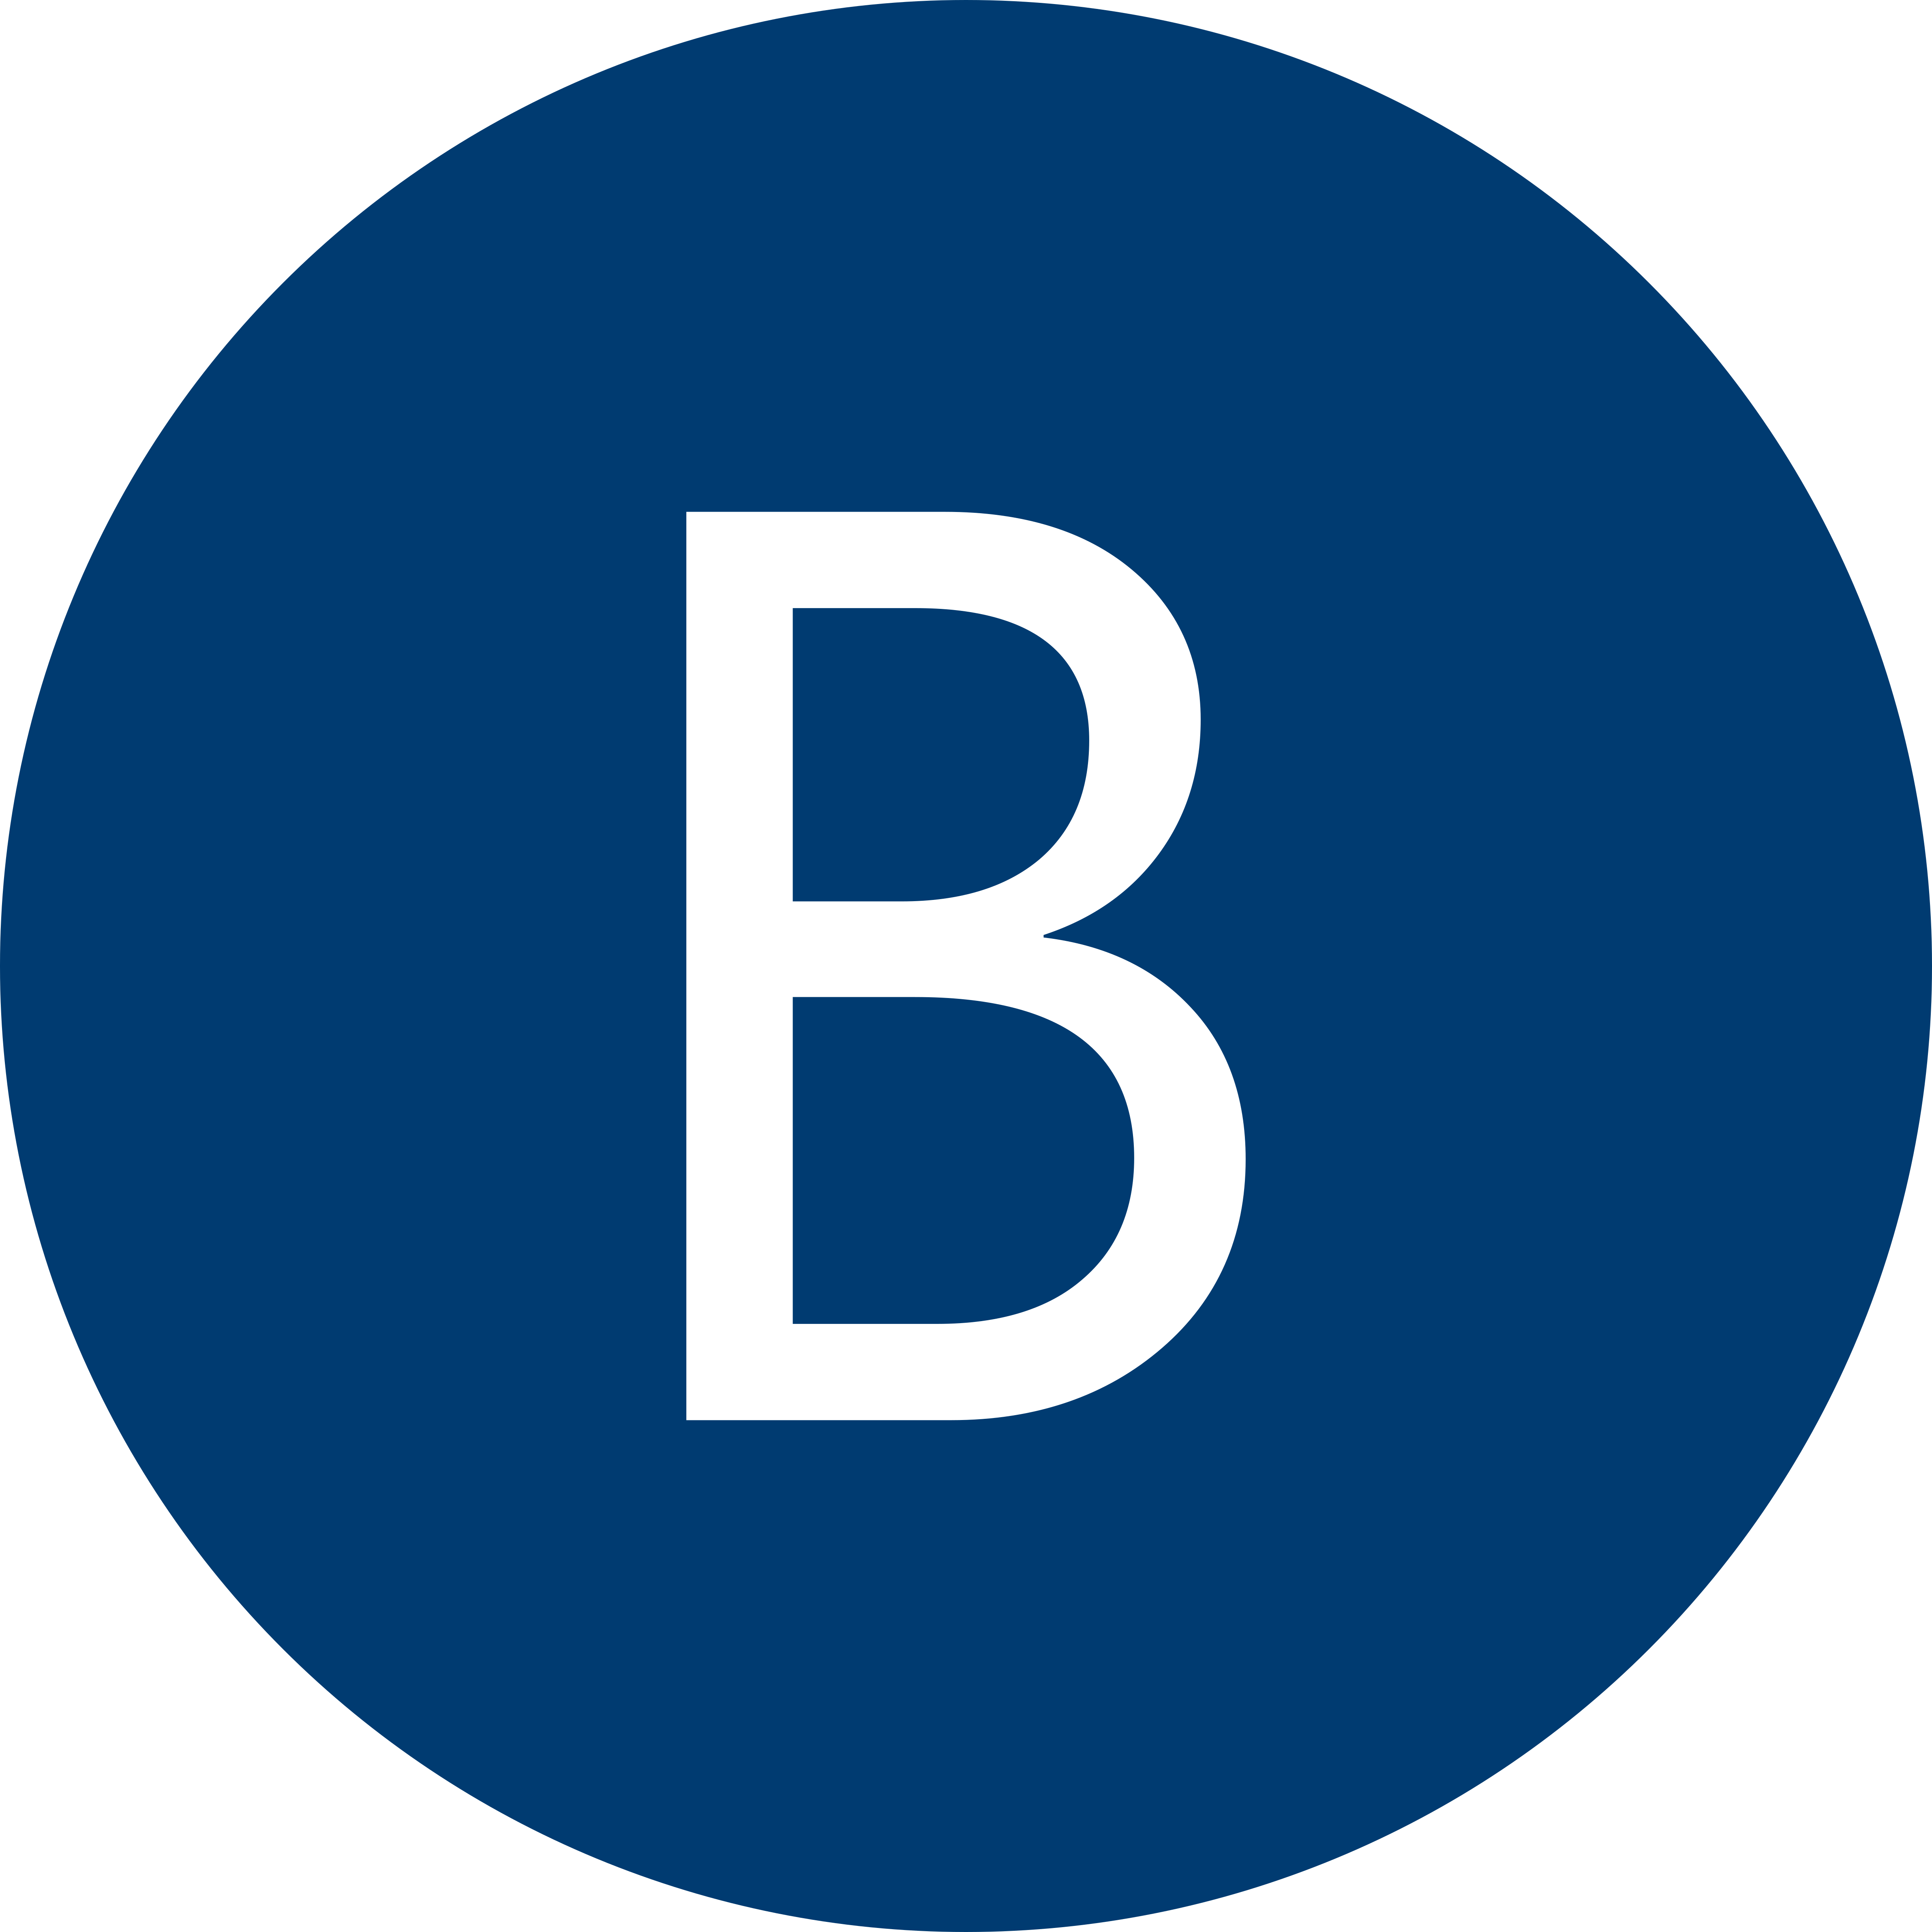 Blue circle with a white letter B inside